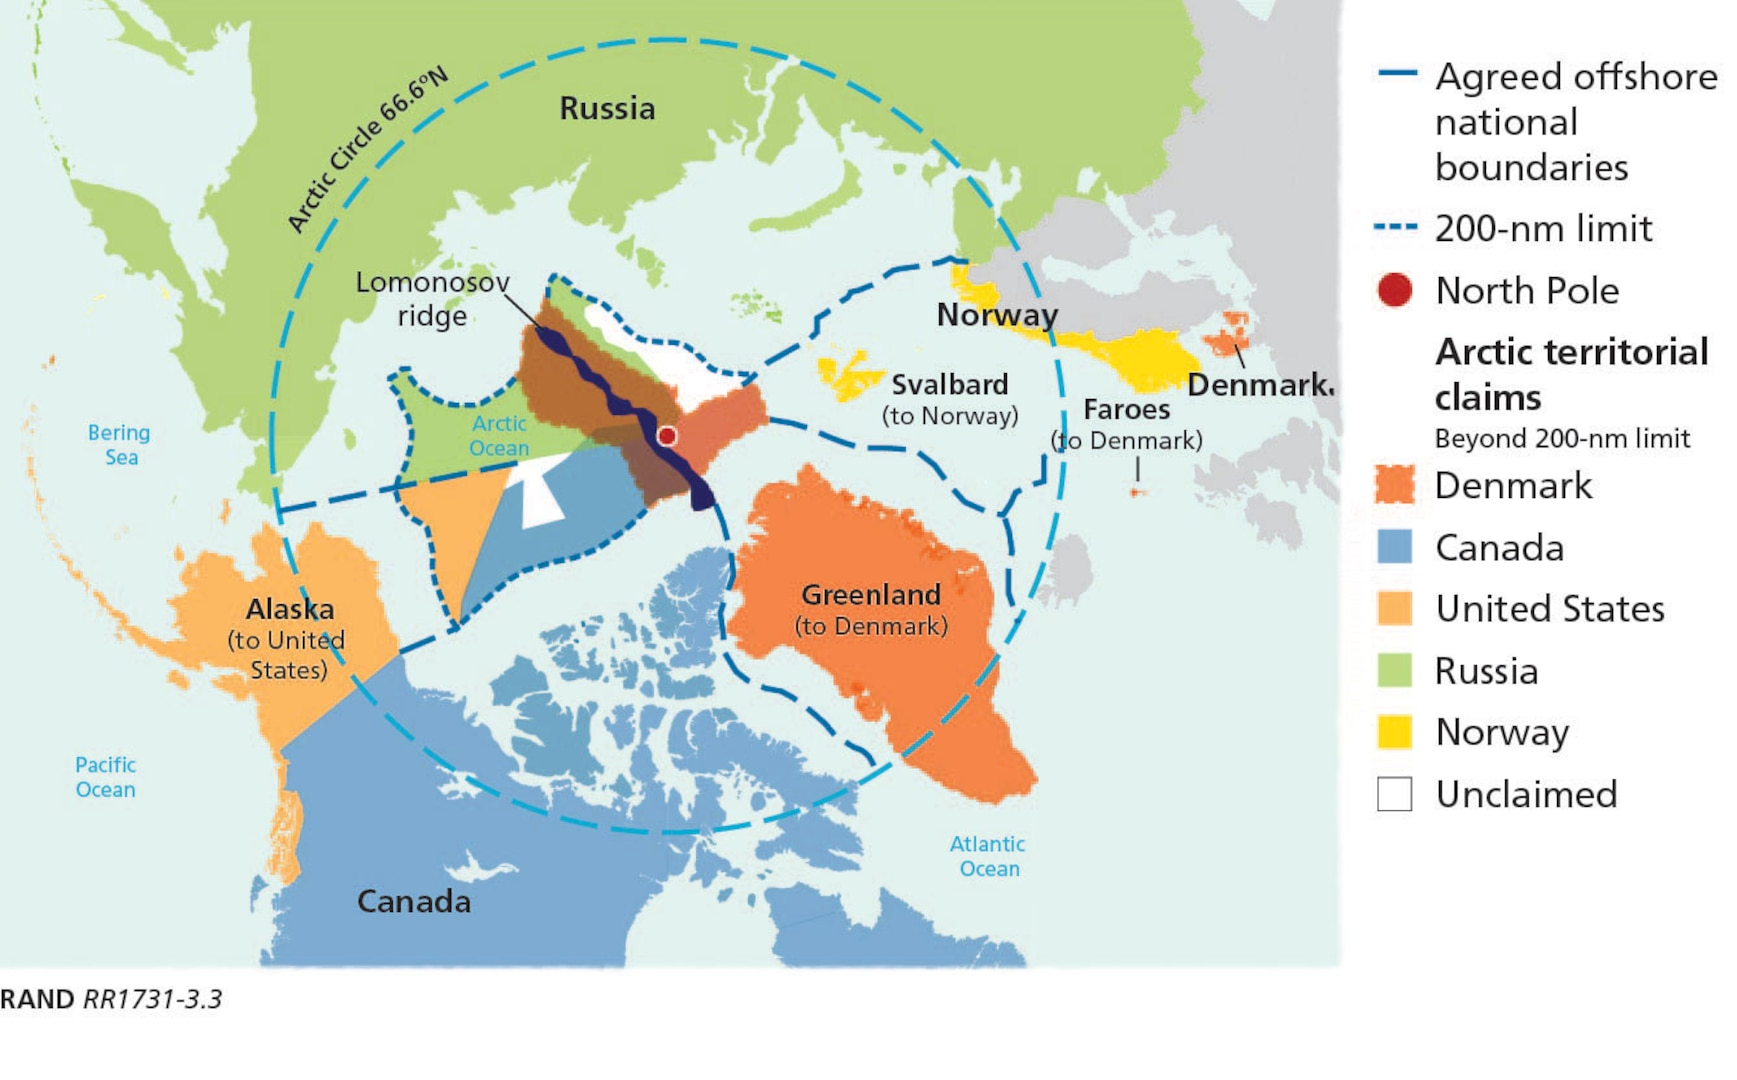 Source: Stephanie Pezard, Abbie Tingstad, Kristan Van Abel, Soctt Stephenson, Maintaining Artic Cooperation with Russia: Planning for Regional Change in the Far North (Santa Monica, CA: RAND Corporation, 2017) available at <https://www.rand.org/pubs/research_reports/RR1731.html>.  Reproduced with permission from RAN Corporation.